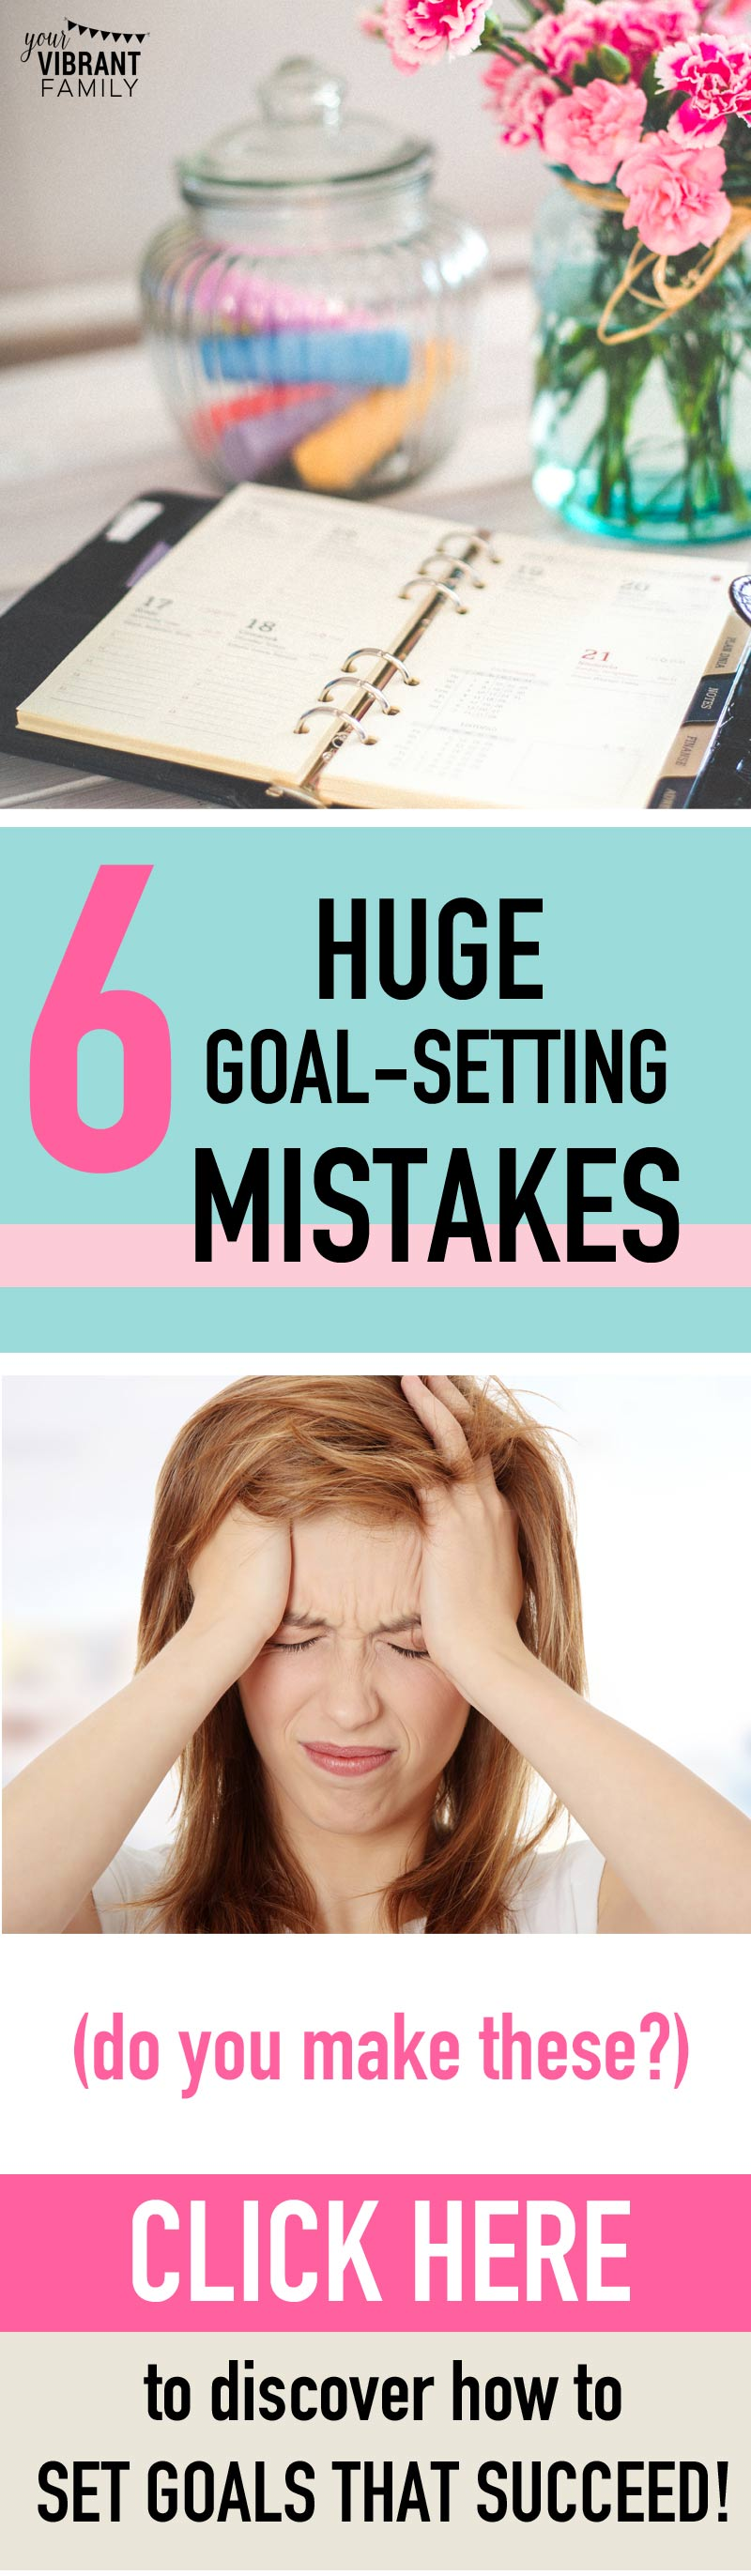 goal setting mistakes | goal setting | goal setting worksheet | setting goals | effective goal setting | the goal setting | setting goals | tips on setting goals |